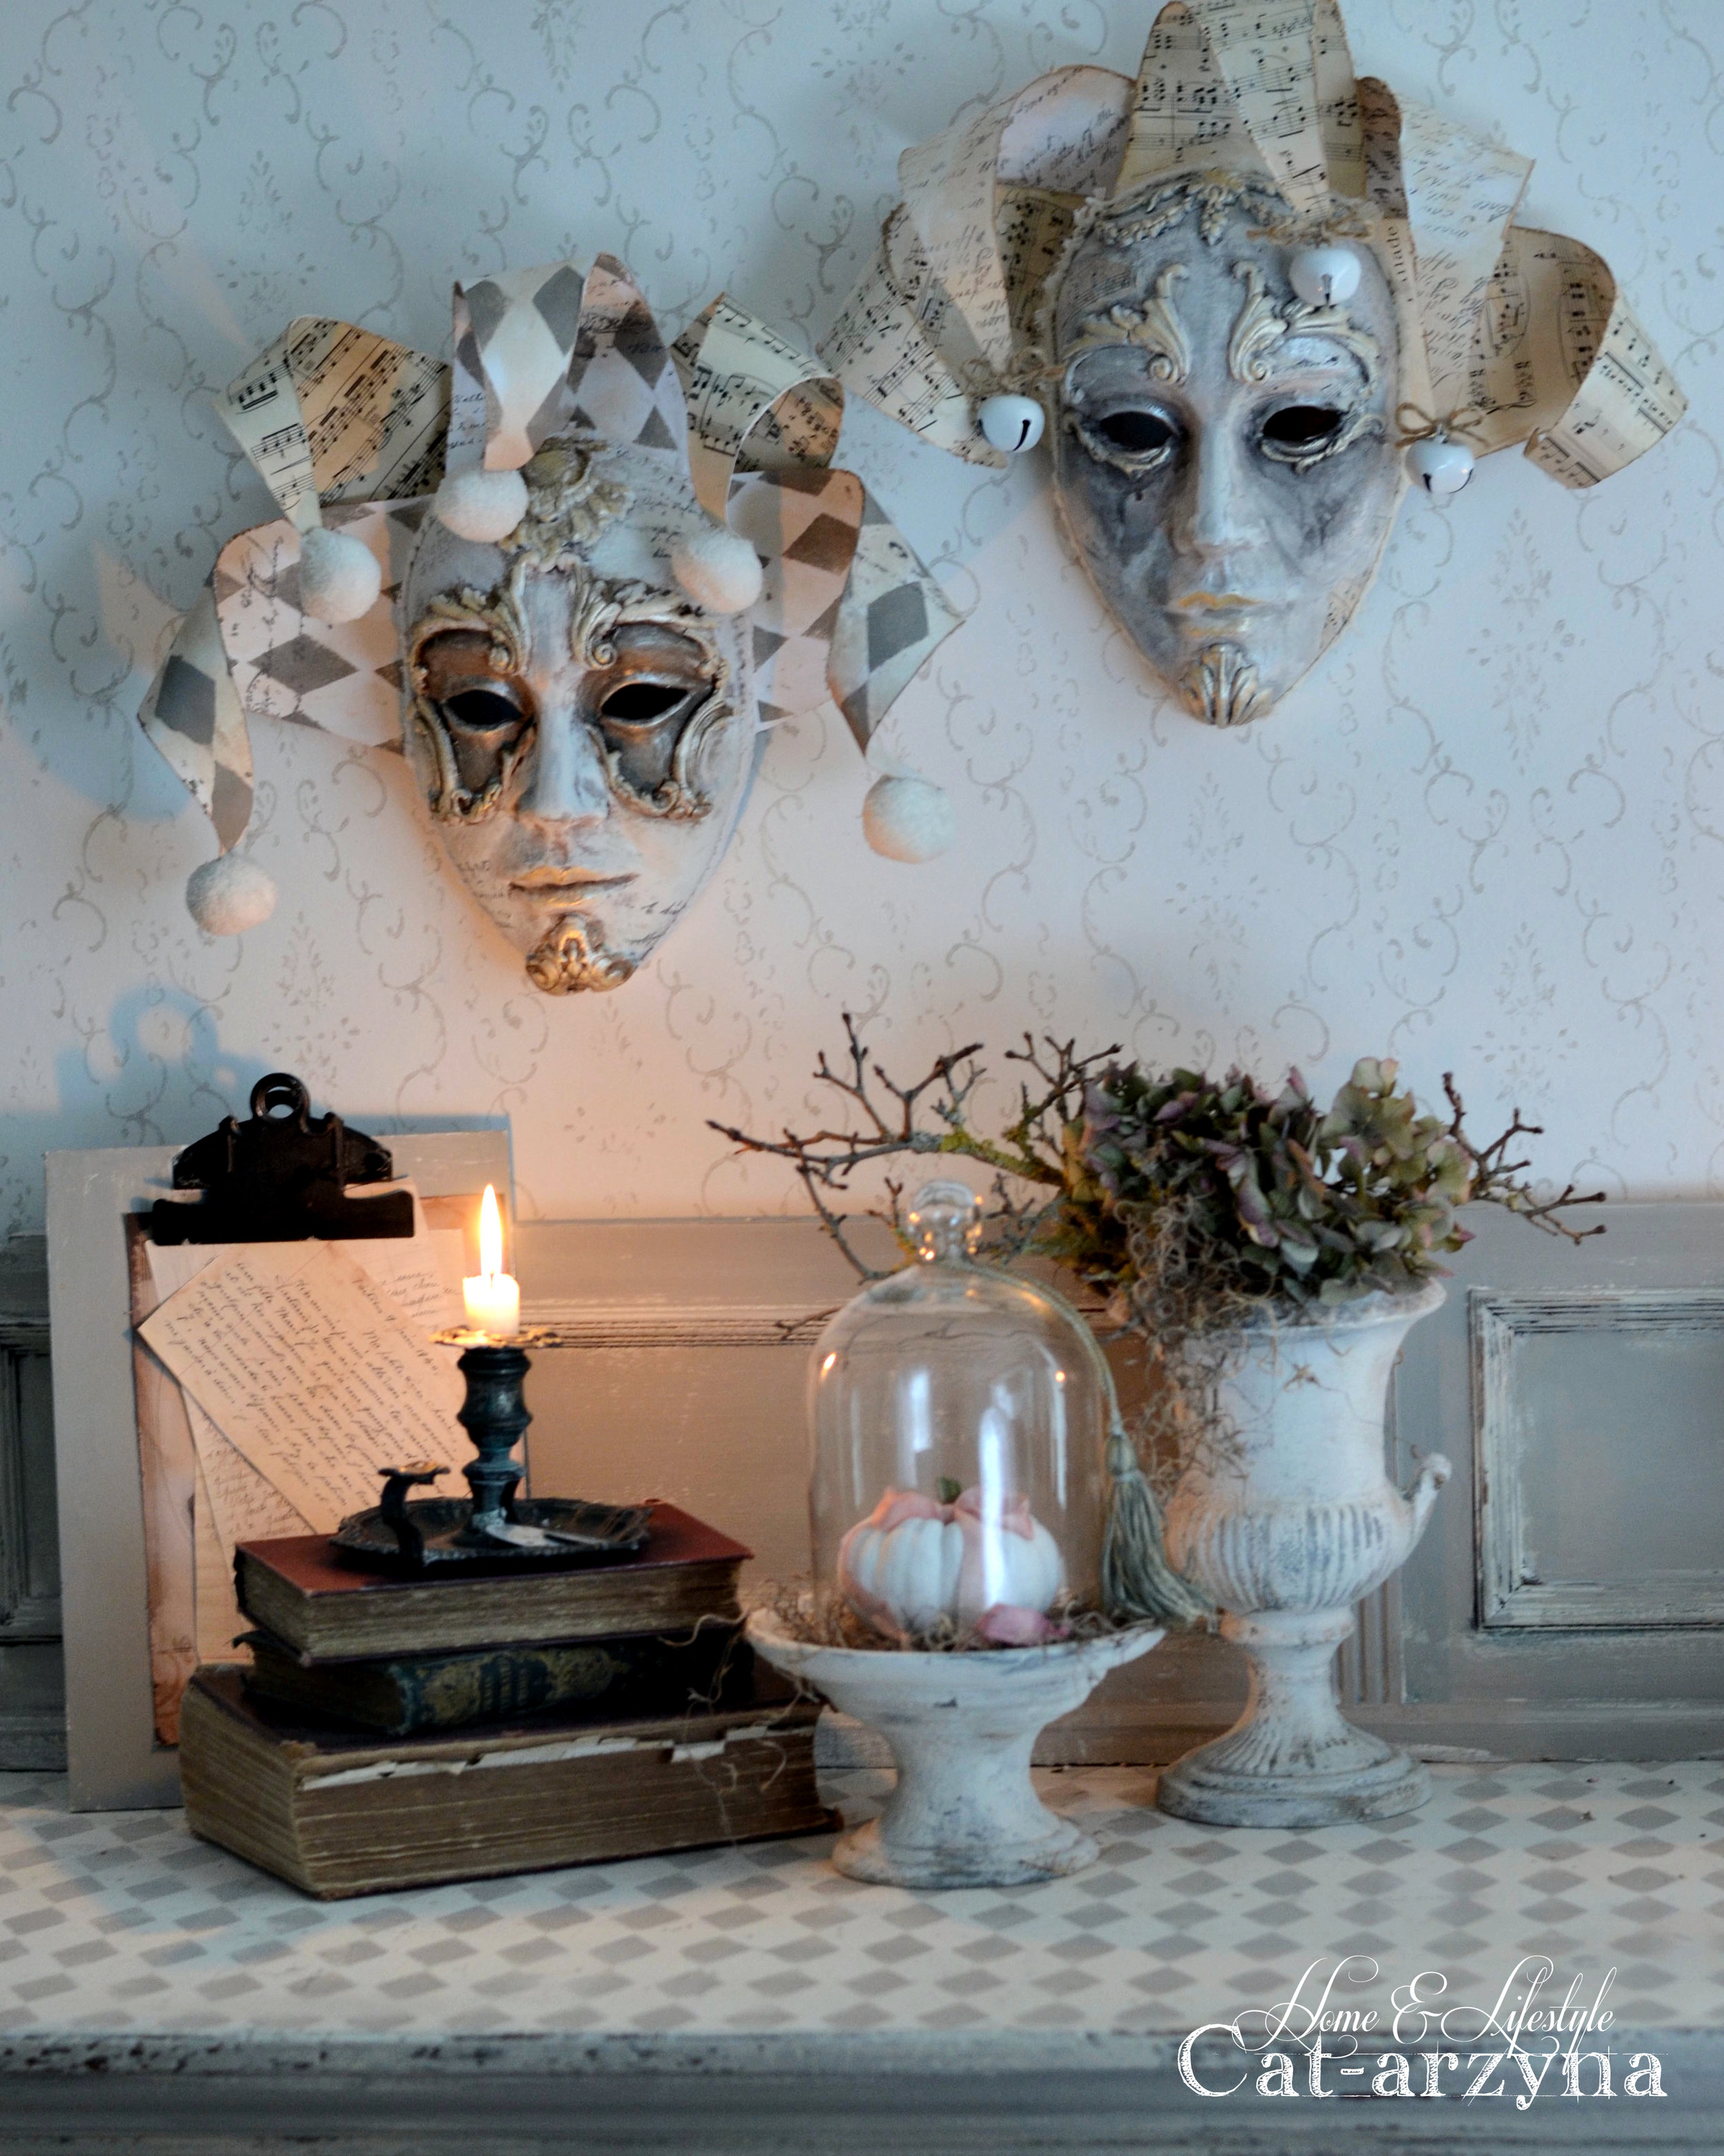 Here are the finished masks! Aren't they wonderful? We hope you found today's post inspiring and that you give a try for yourself.Find more of Cat-arzyna's work  here !  Annie Sloan Old White paint IOD decor moulds-Baroque 3 814793, Baroque 4 -814809 IOD paper clay 814991 961466-Clear Gesso 961305-Stencil-Harlequin gold and silver wax  Cardstock paper  hot glue gun